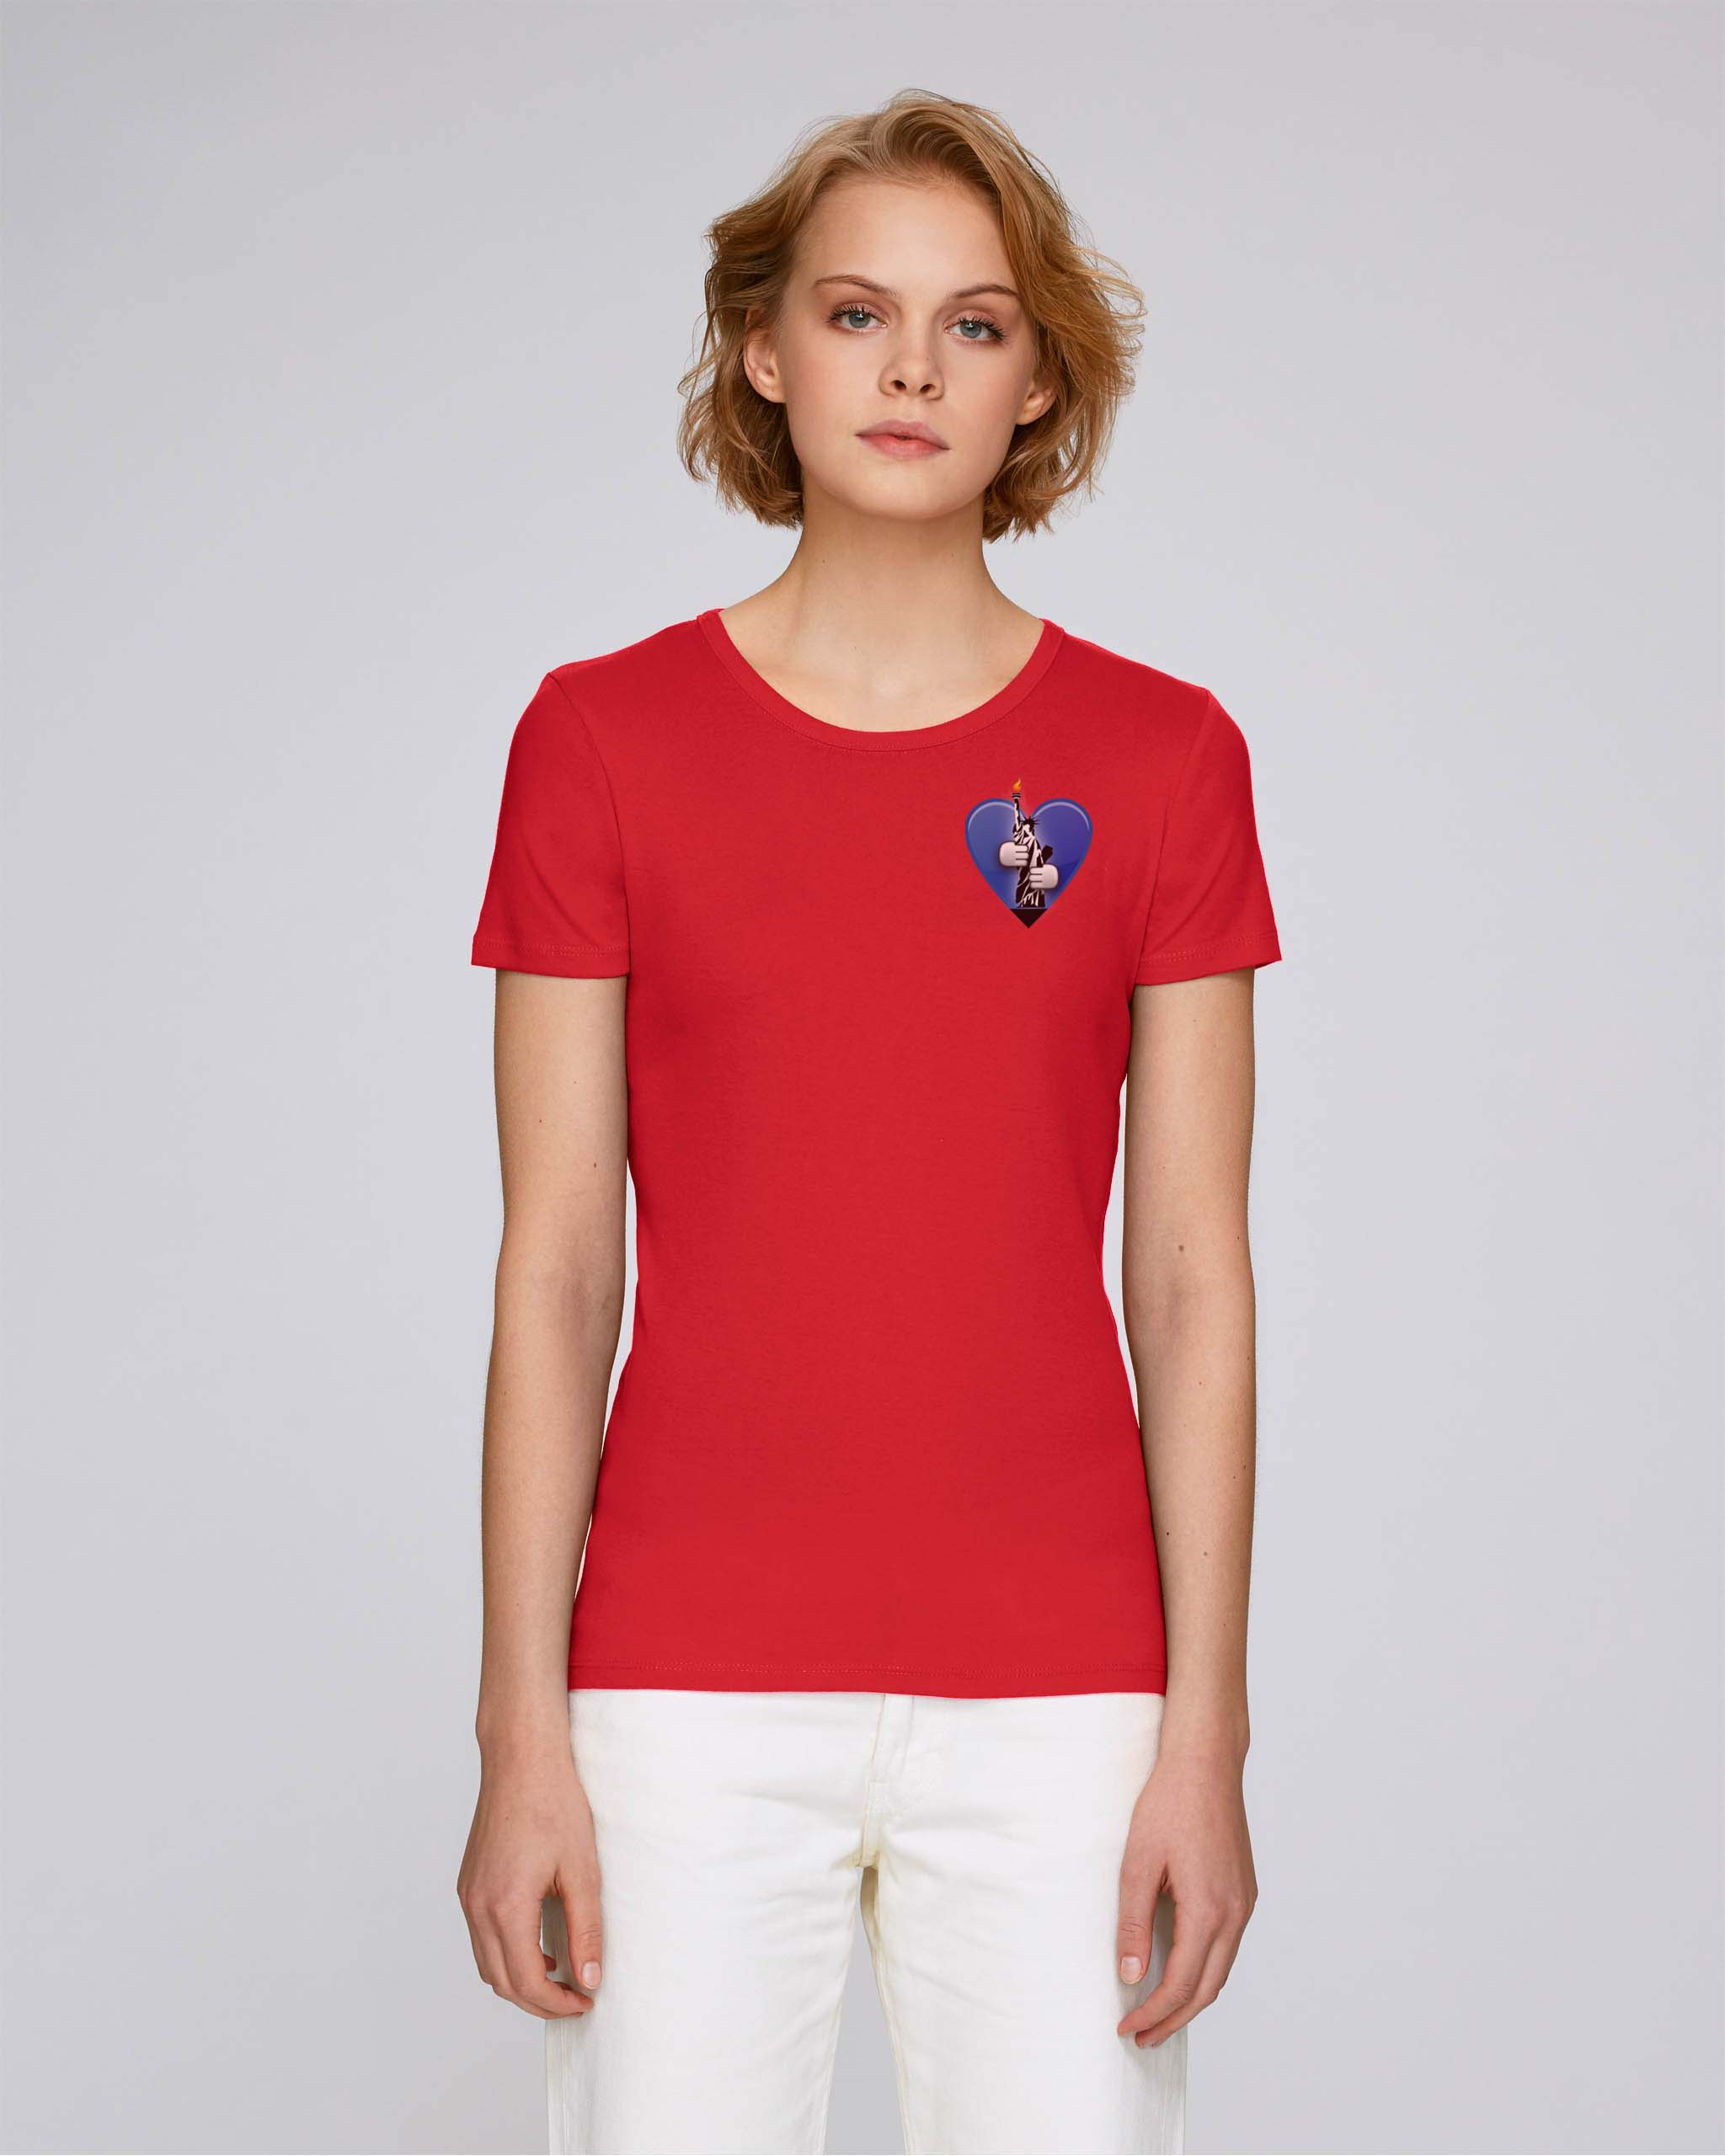 T-Shirt Bio rouge Femme – New york tee